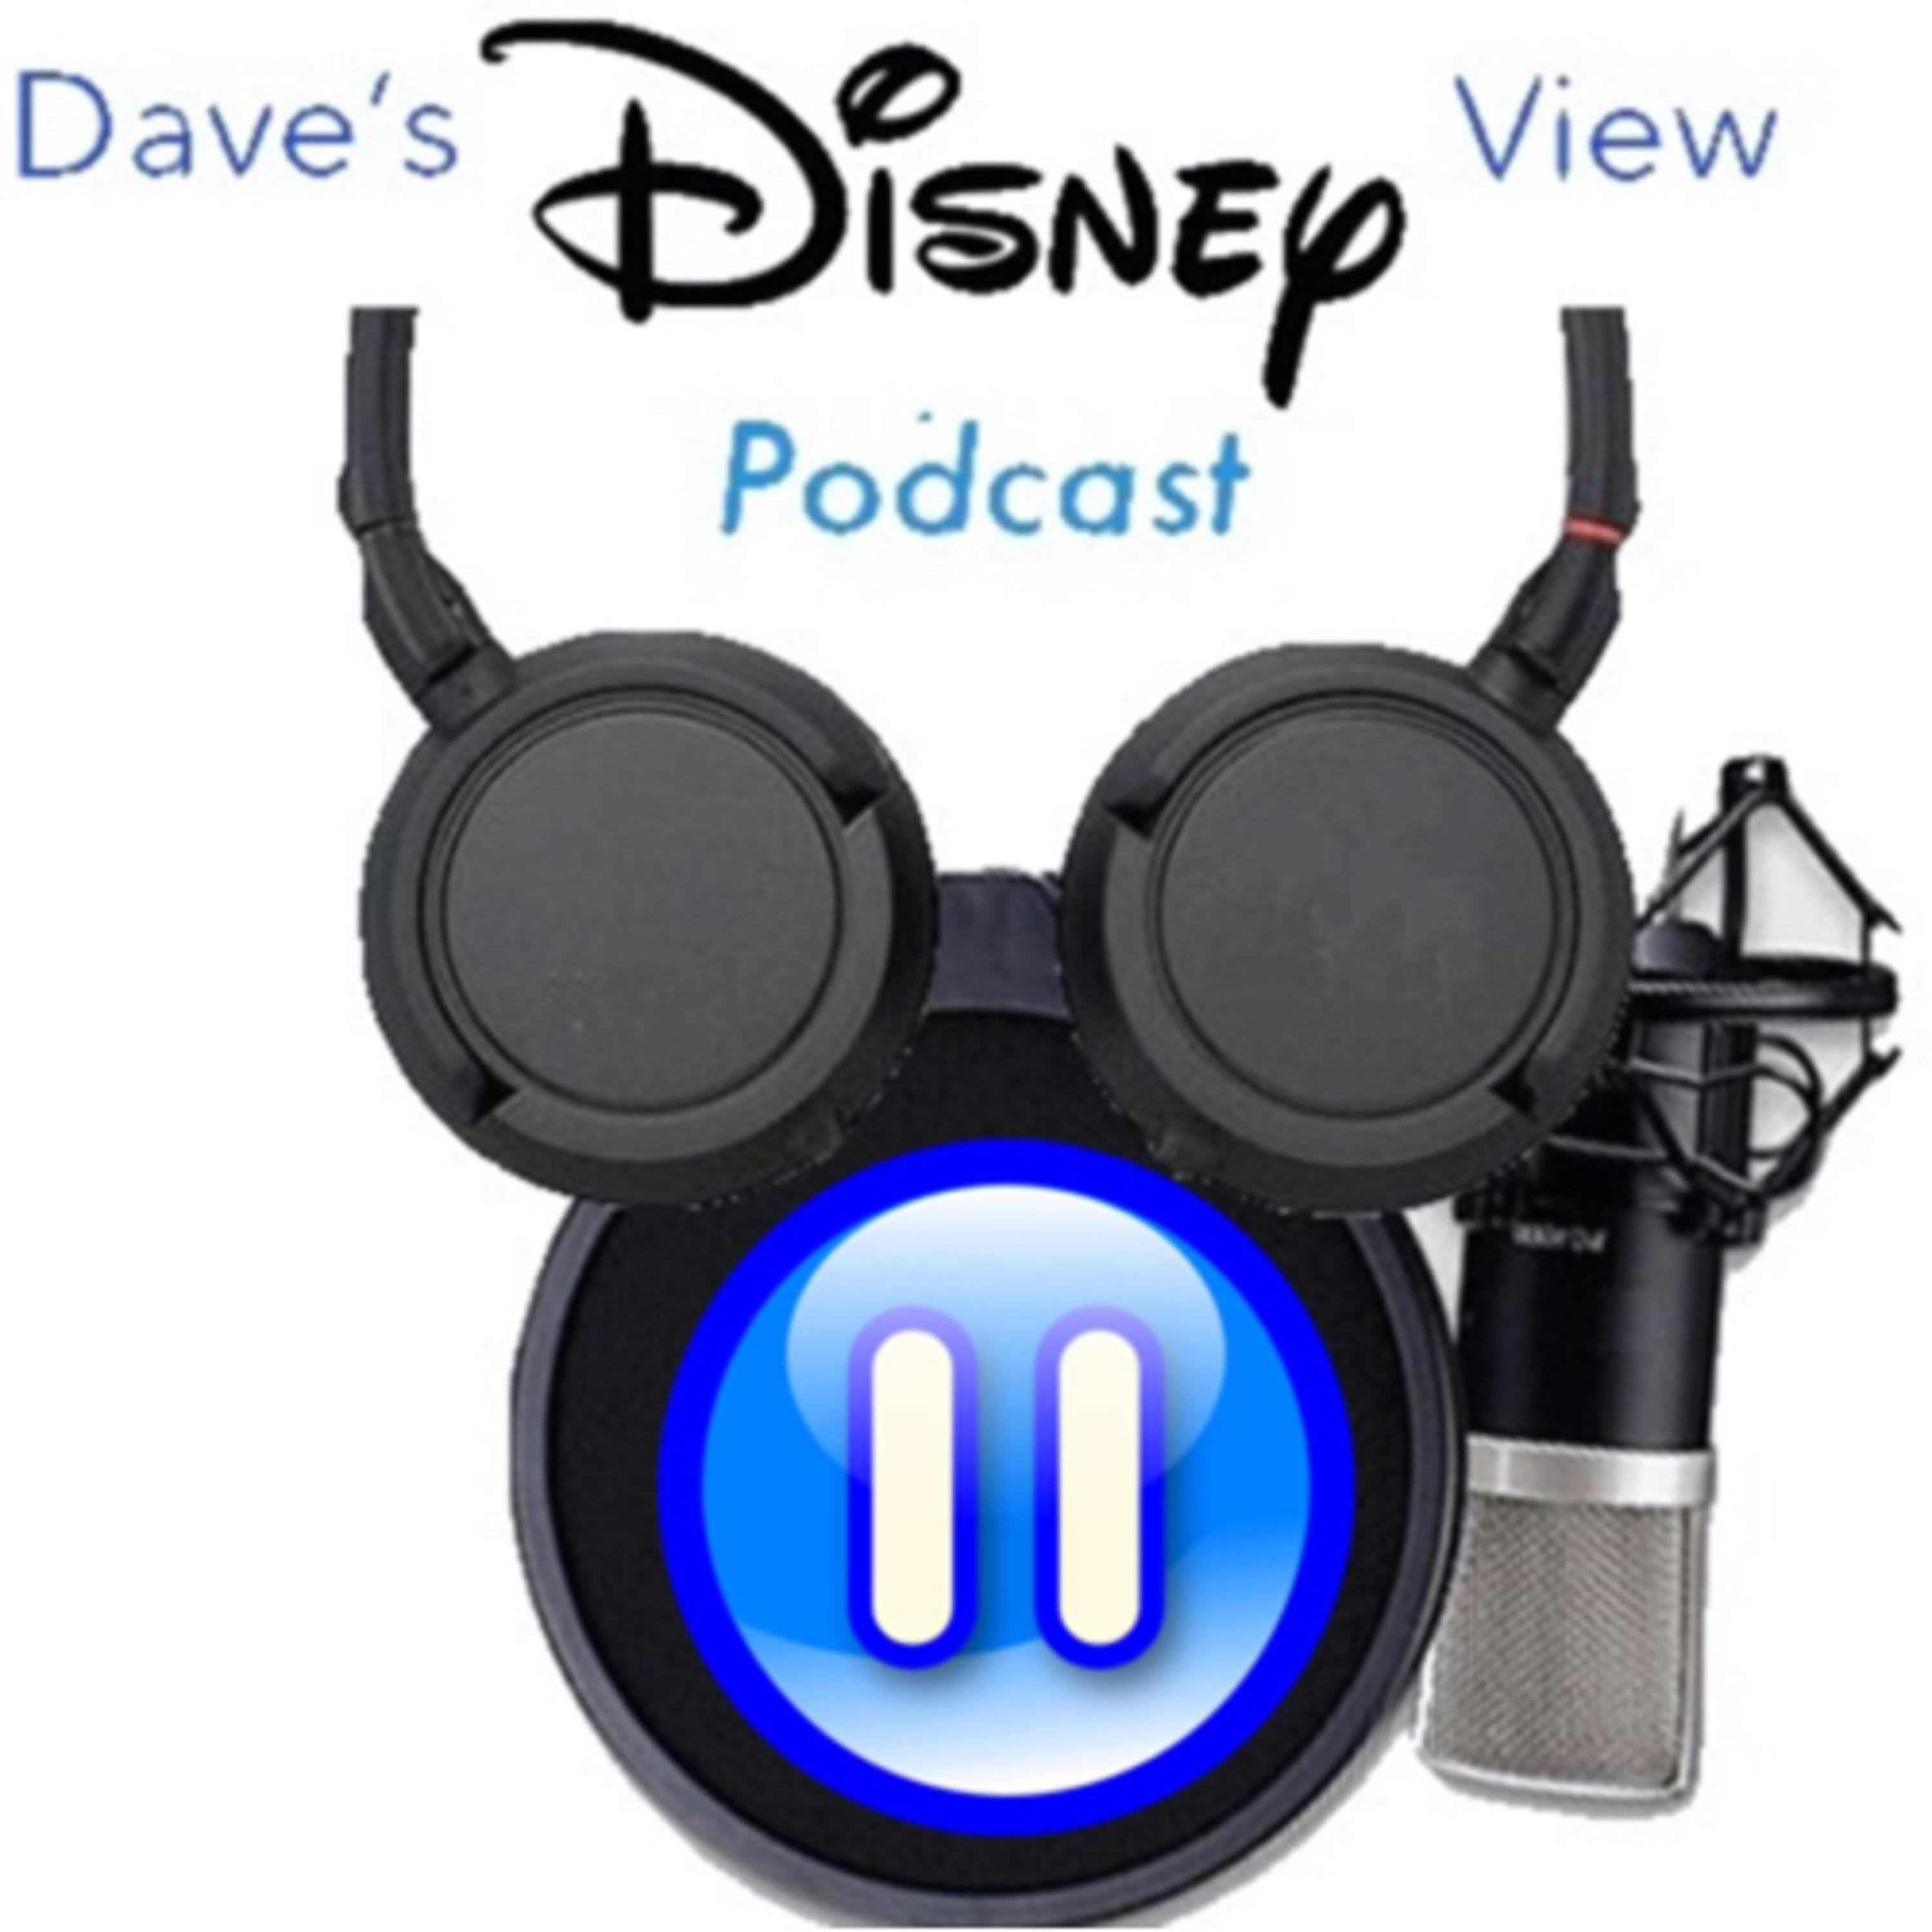 Episode #397 - Another pause in my podcast